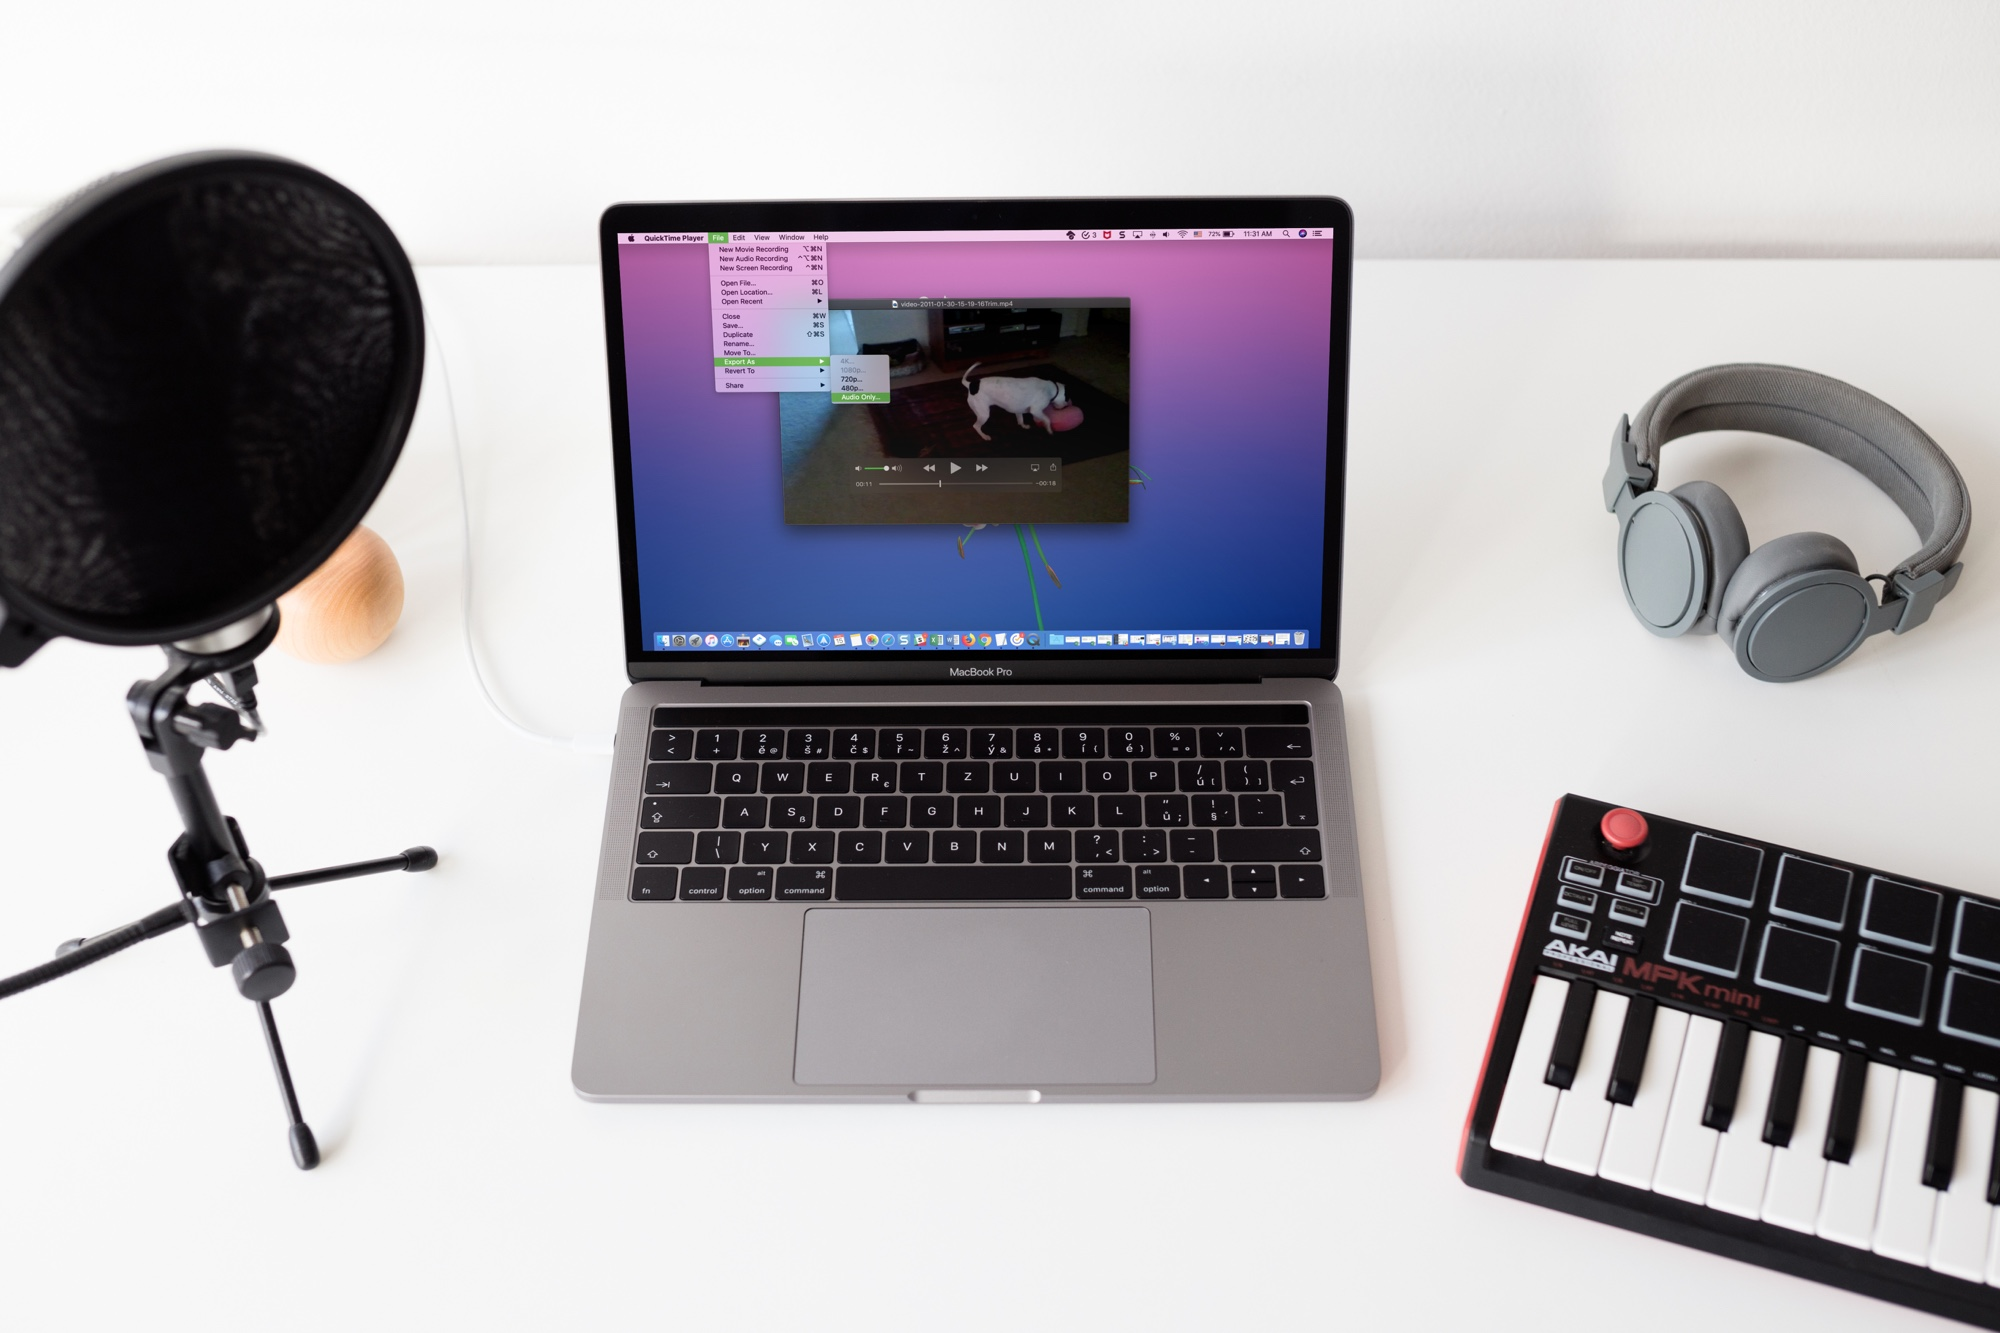 Extract Audio from Video on MacBook with QuickTime